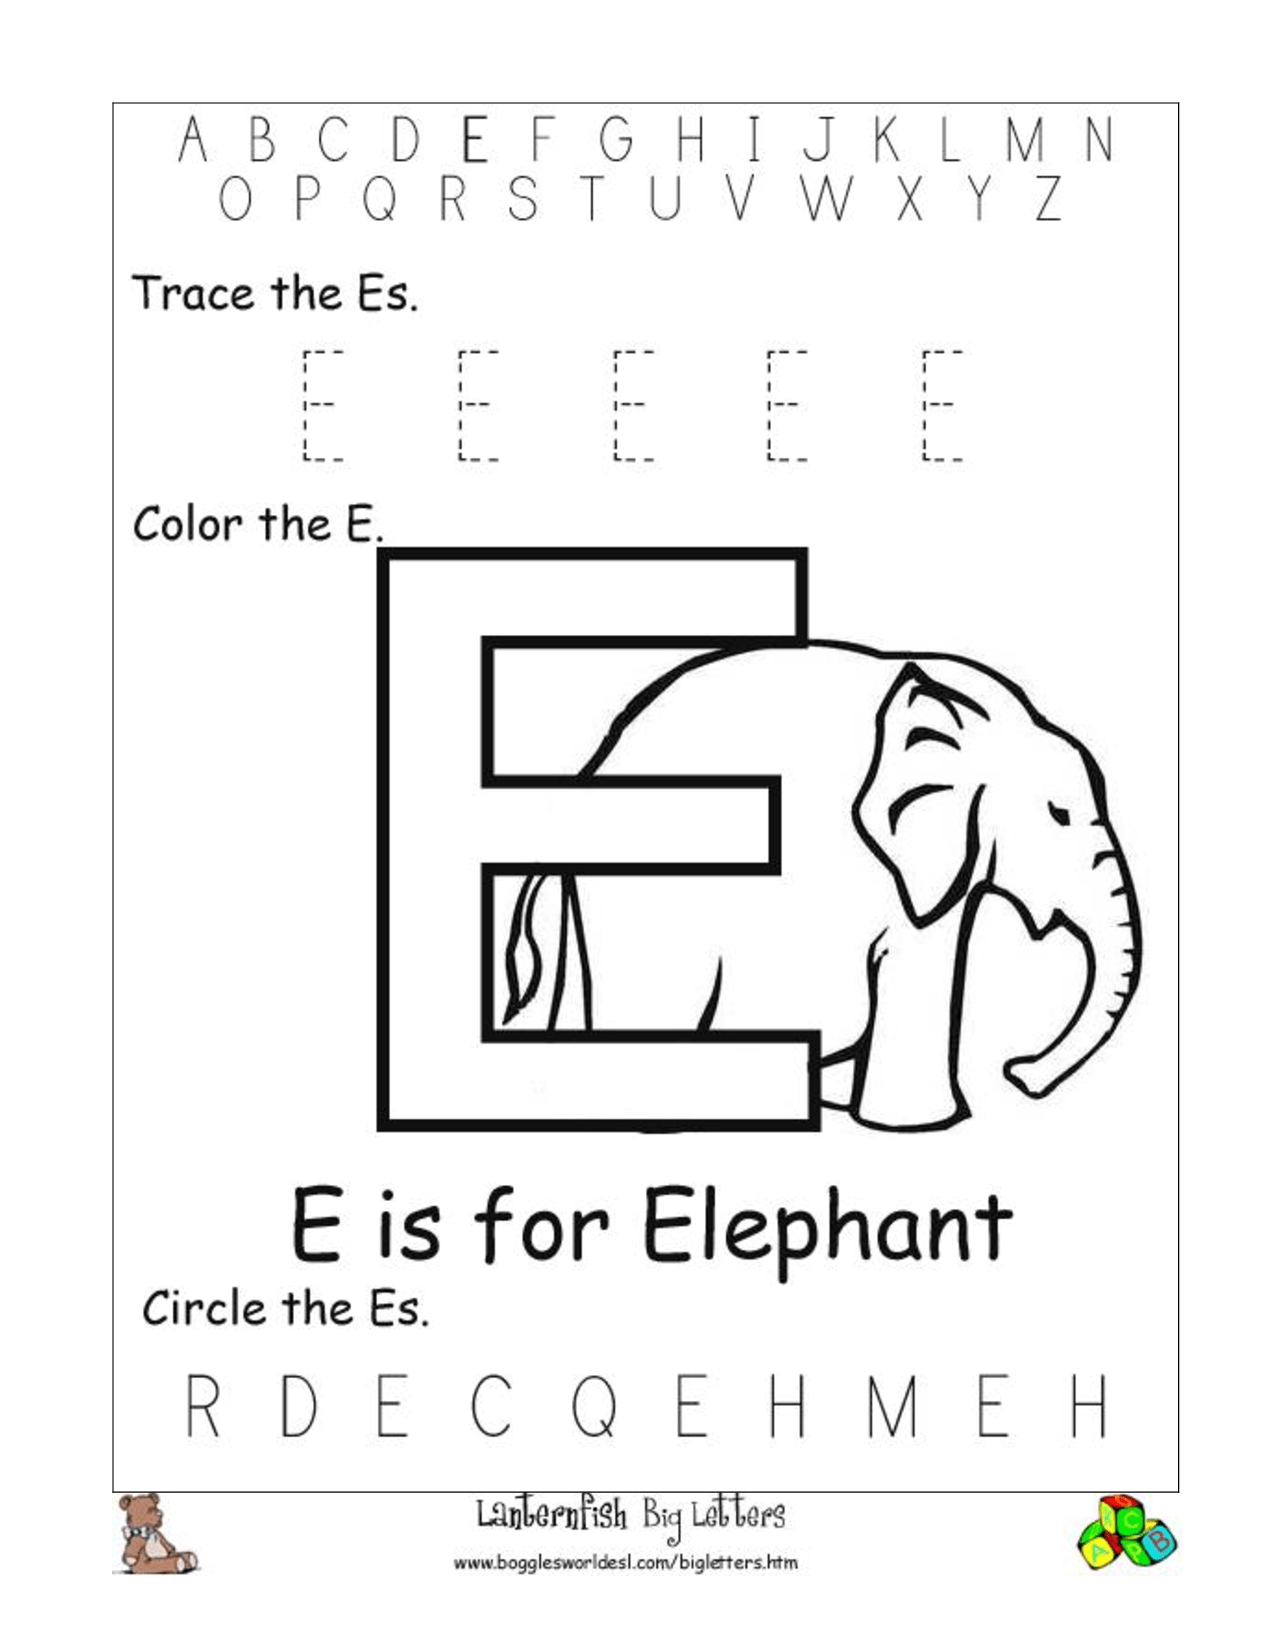 Alphabet Worksheet Category Page 4